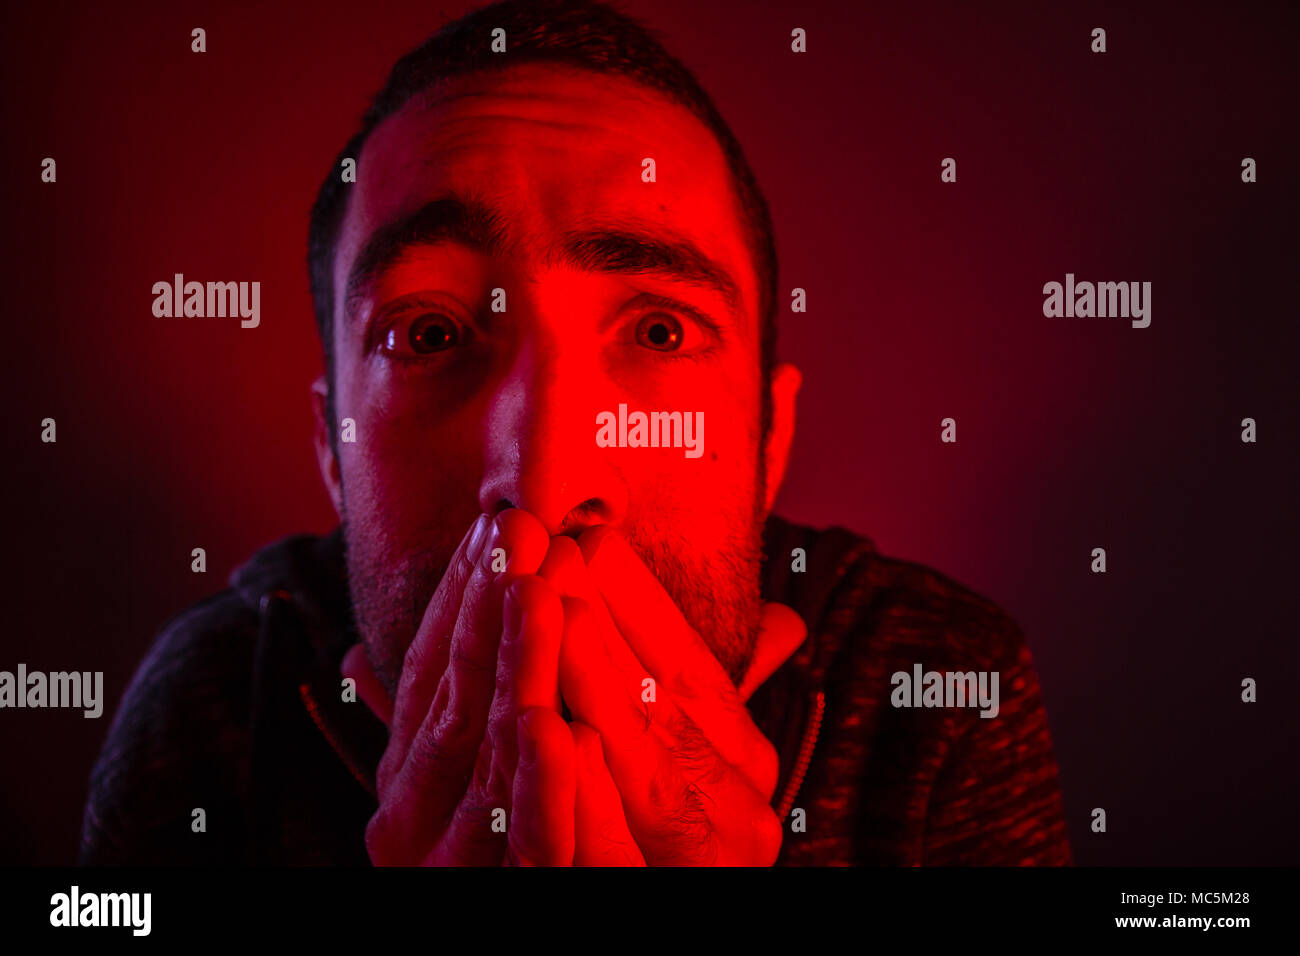 Stunned frightened man with surprised facial expression. Close up headshot portrait of shocked man with his hand on the face. - Stock Image